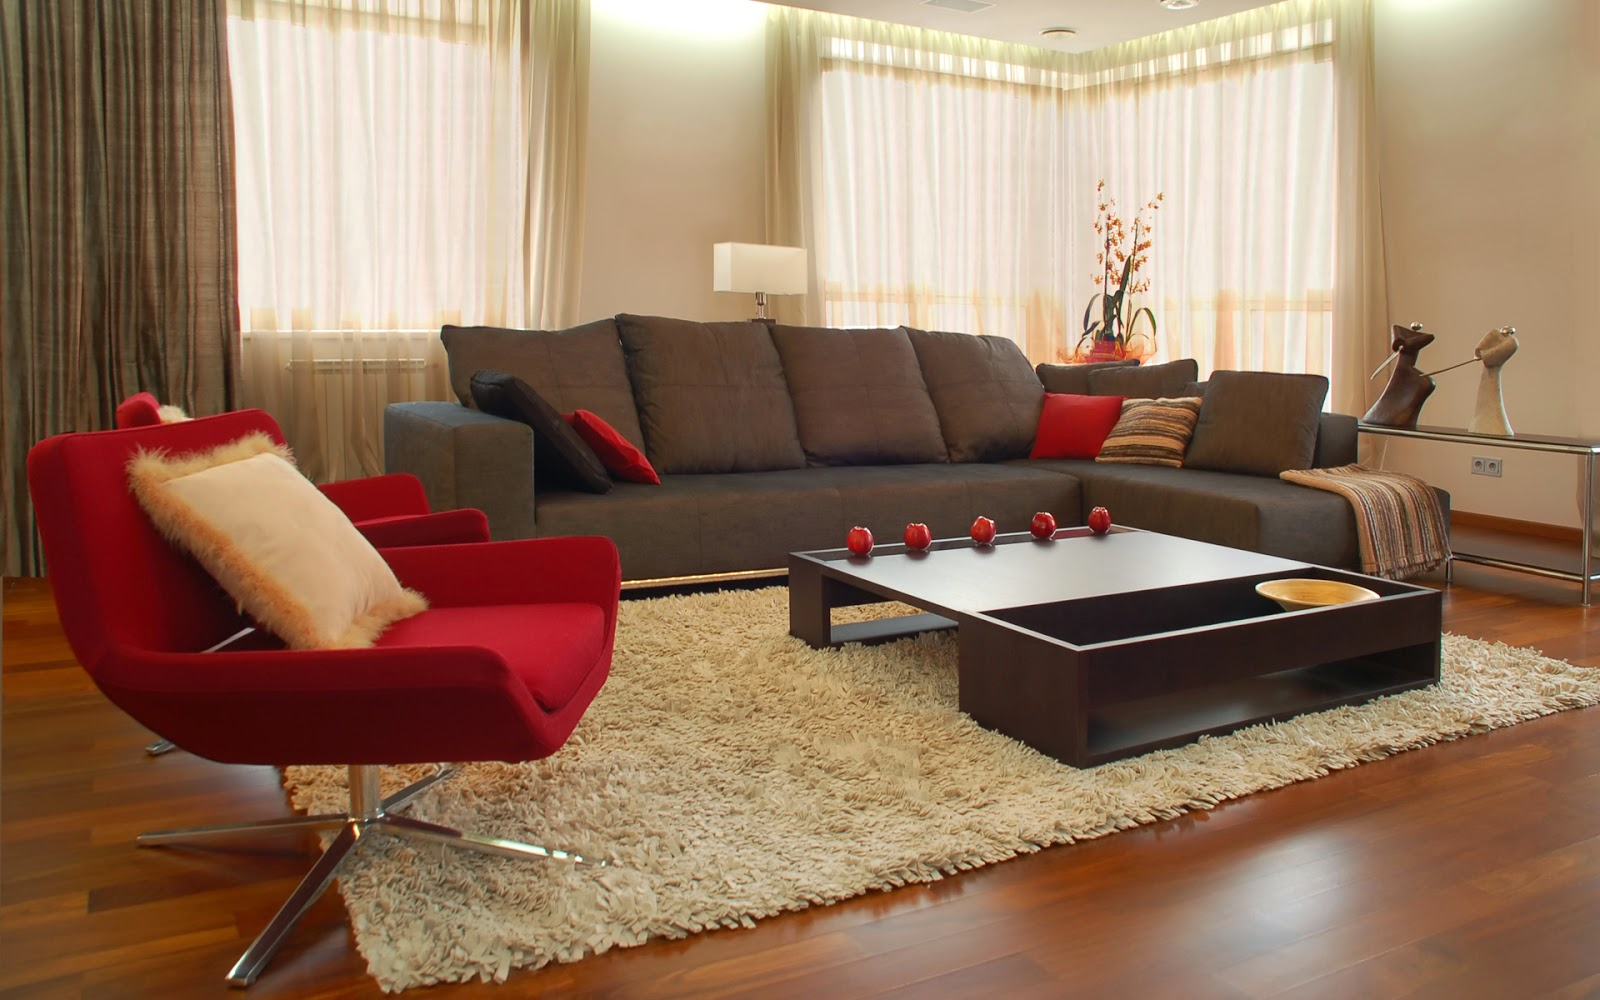 Residential apartments in Greater Noida